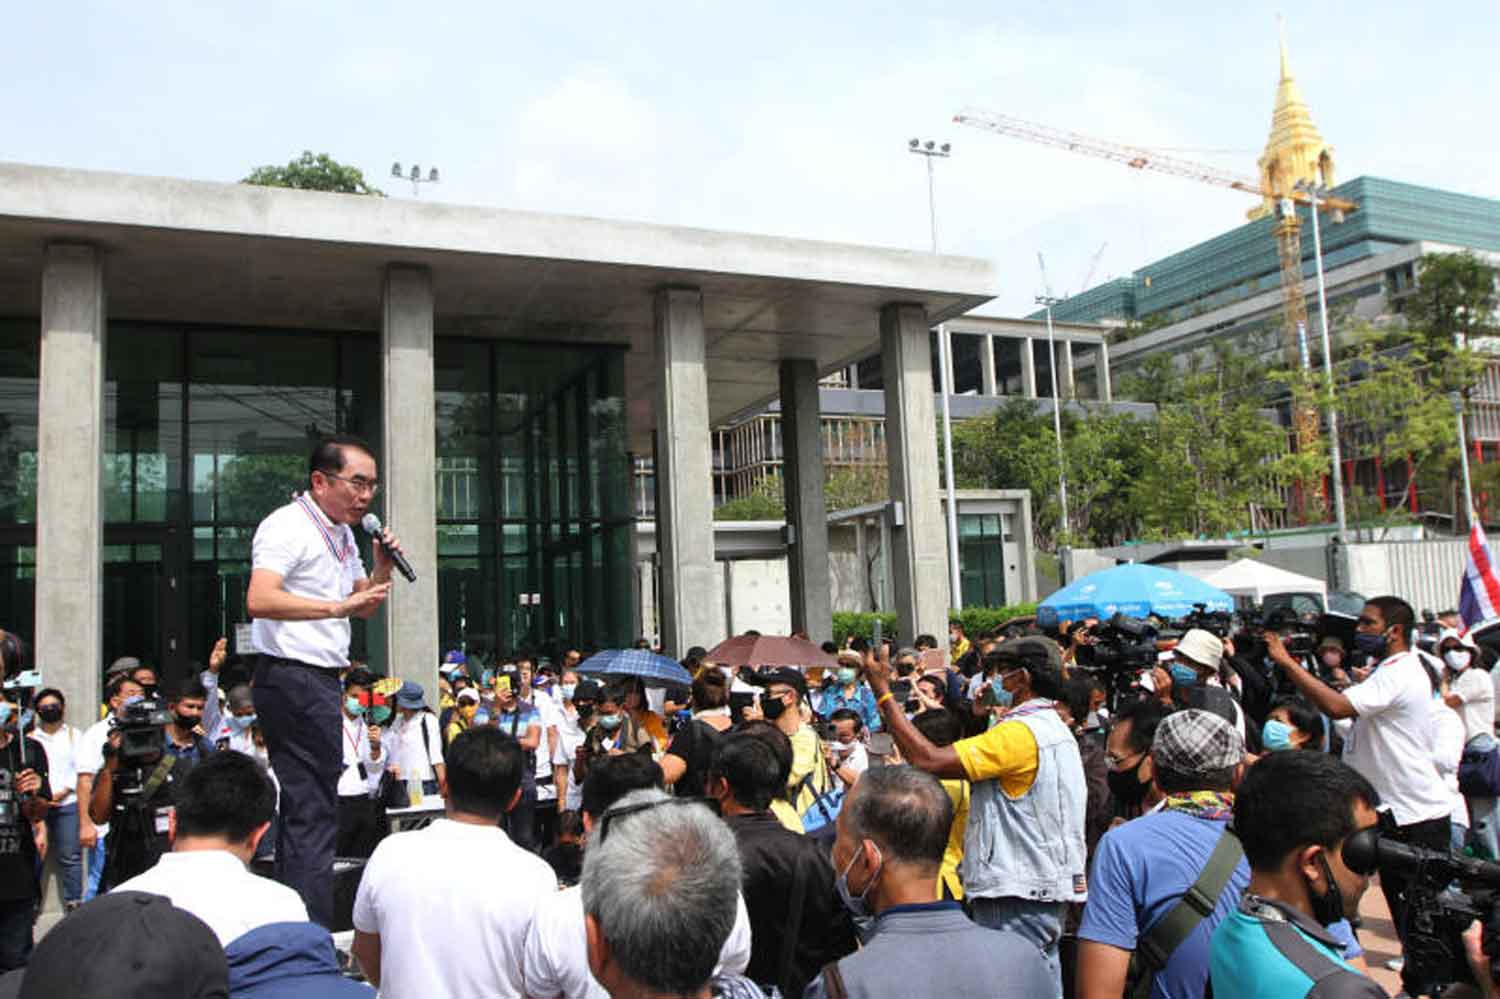 Former MP Warong Dechgitvigrom speaks to members of his Thai Pakdee (Loyal Thai) group as they show up at Parliament in Bangkok on Wednesday to oppose efforts to amend the constitution. (Photo by Wichan Charoenkiartpakun)